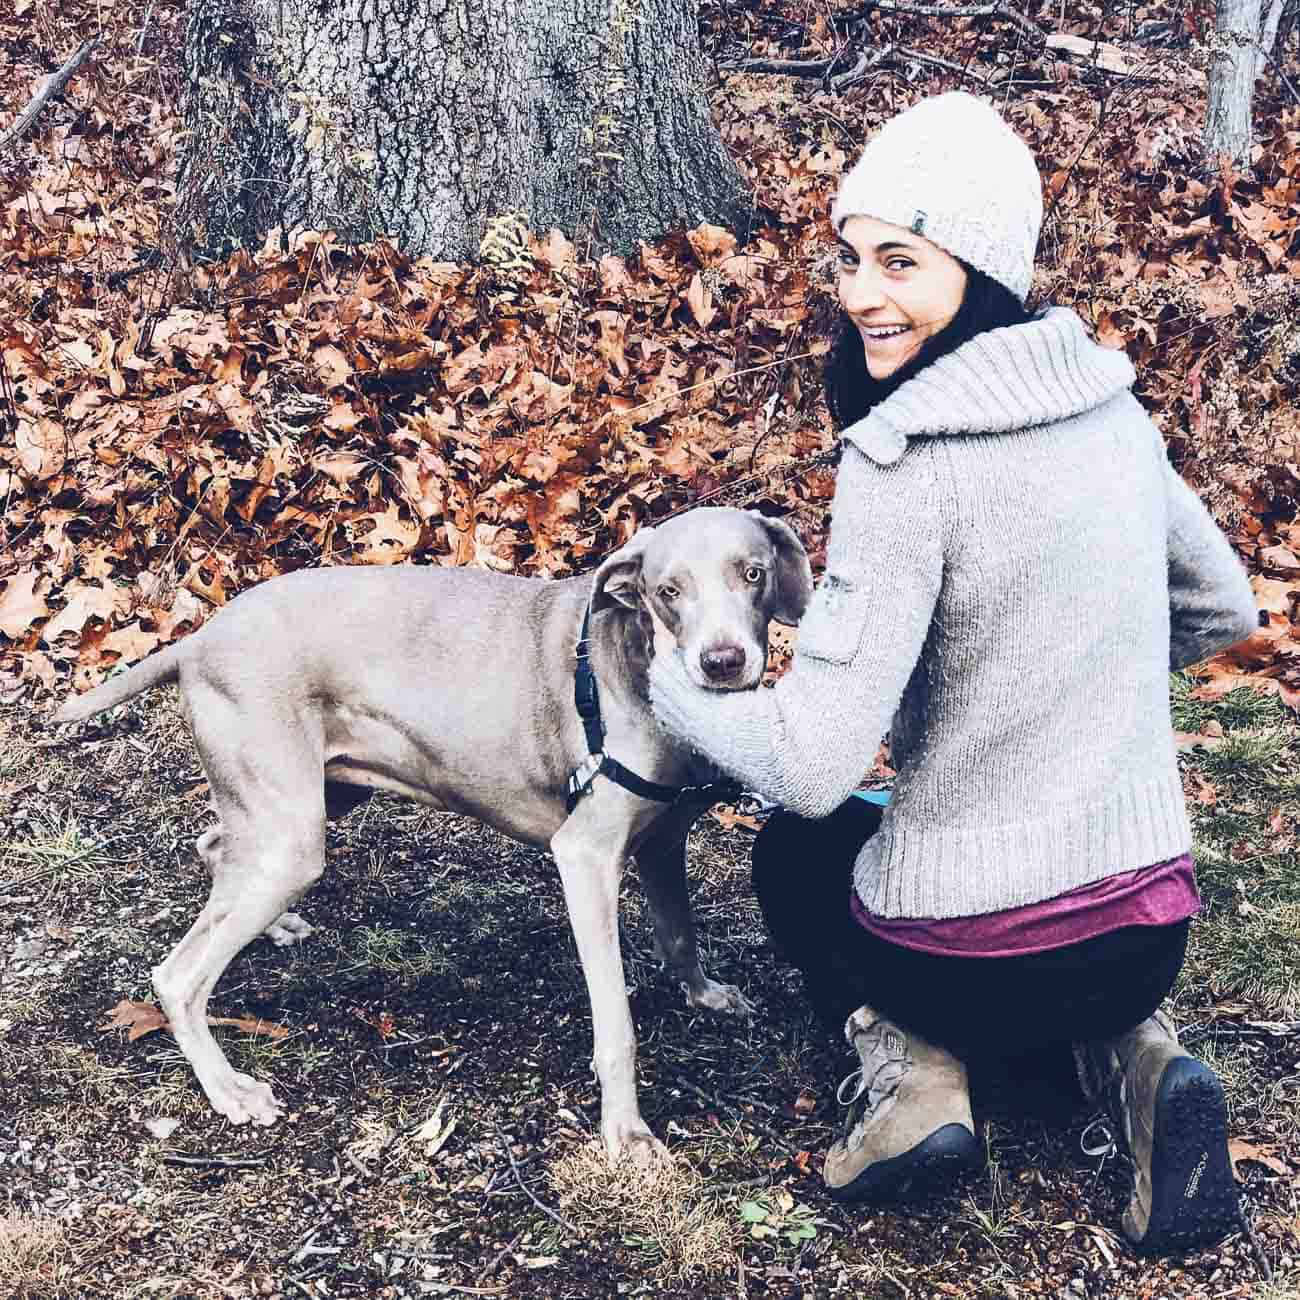 A day of hiking with weimaraner